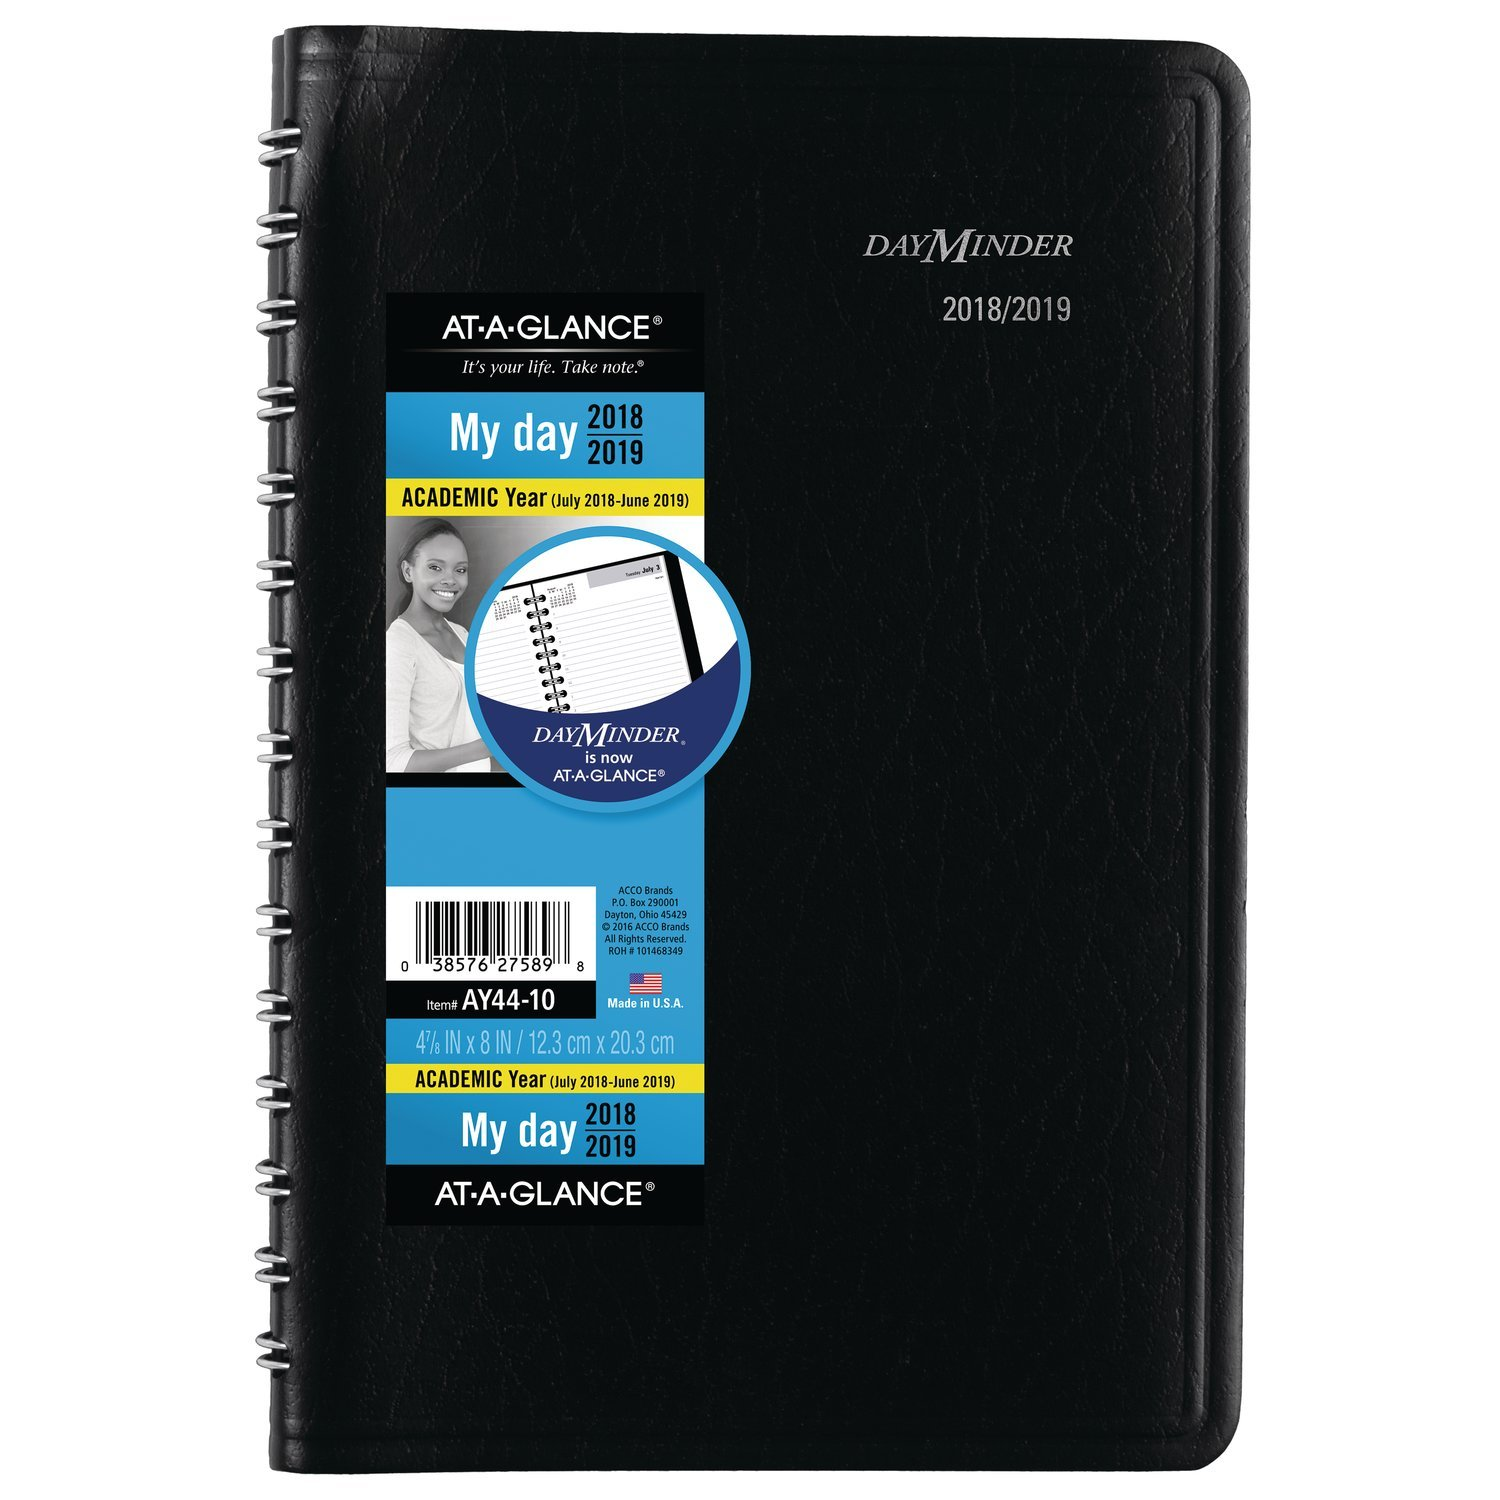 at-A-Glance 2018-2019 Academic Year Daily Planner/Appointment Book, Small, 4-7/8 x 8, DayMinder, Black (AY4400)